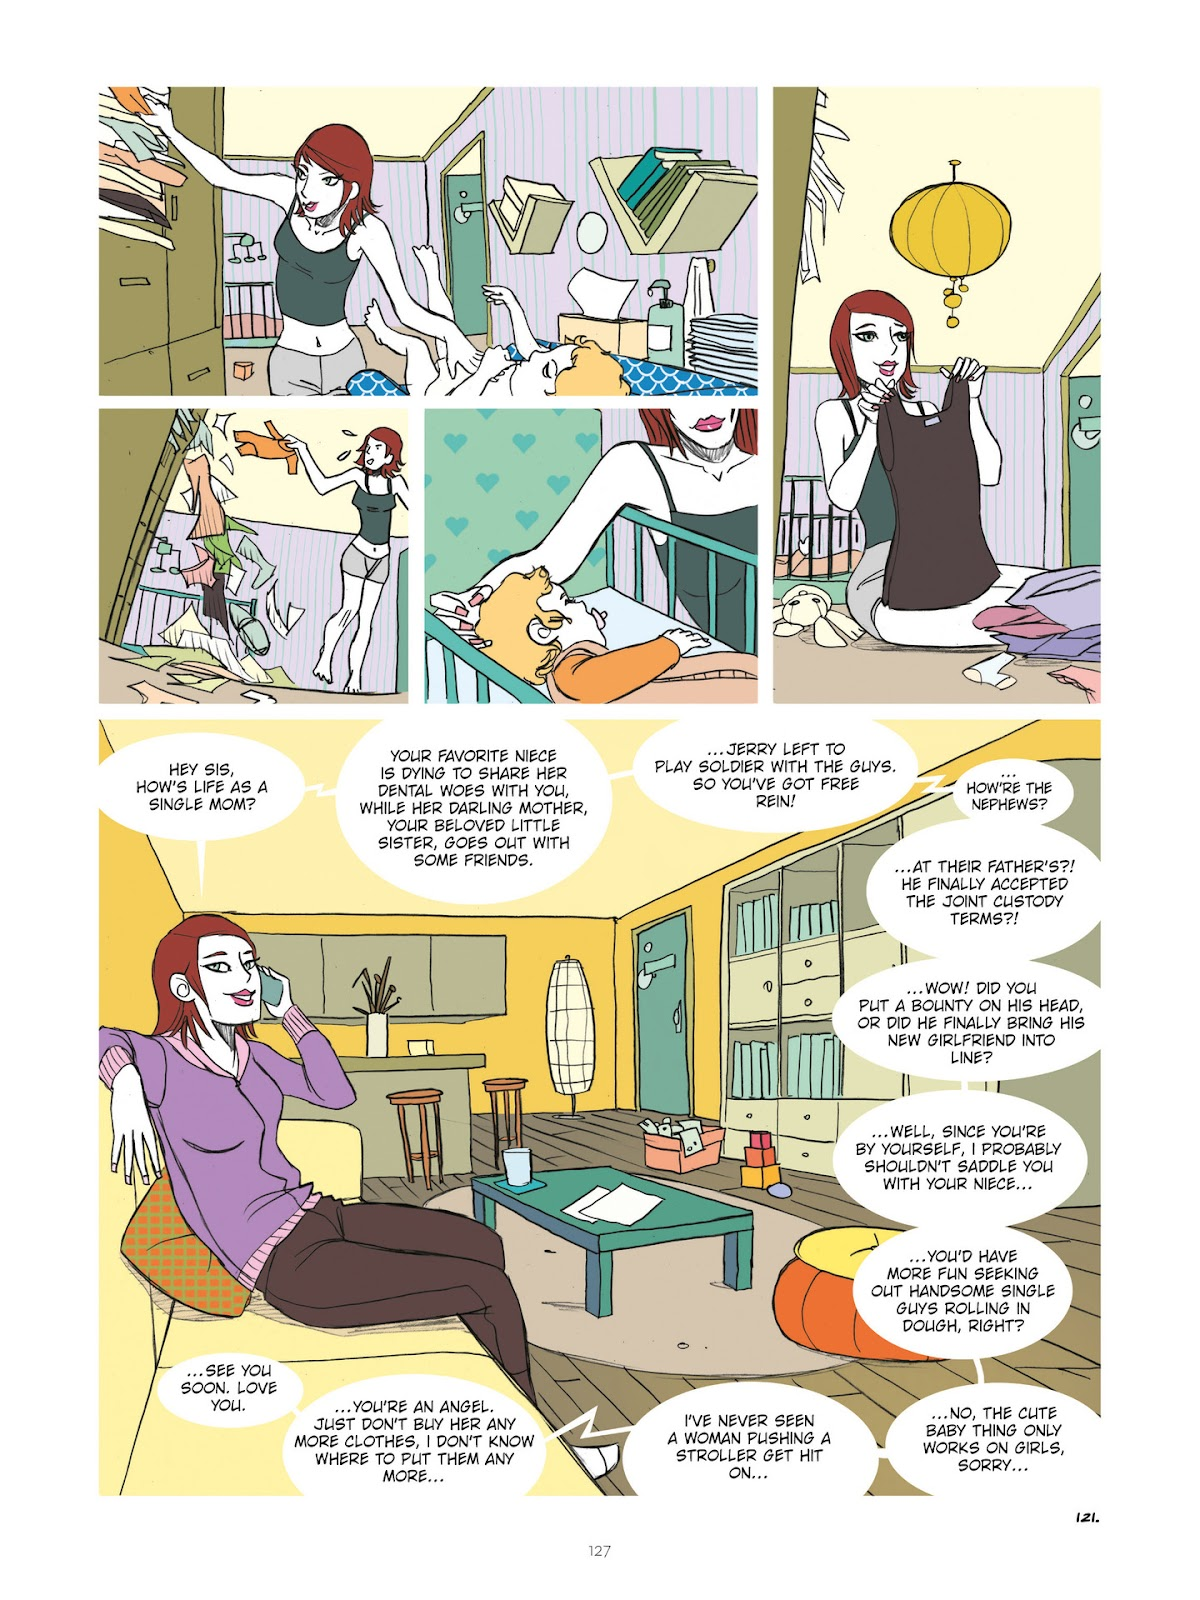 Read online Diary of A Femen comic -  Issue # TPB - 129